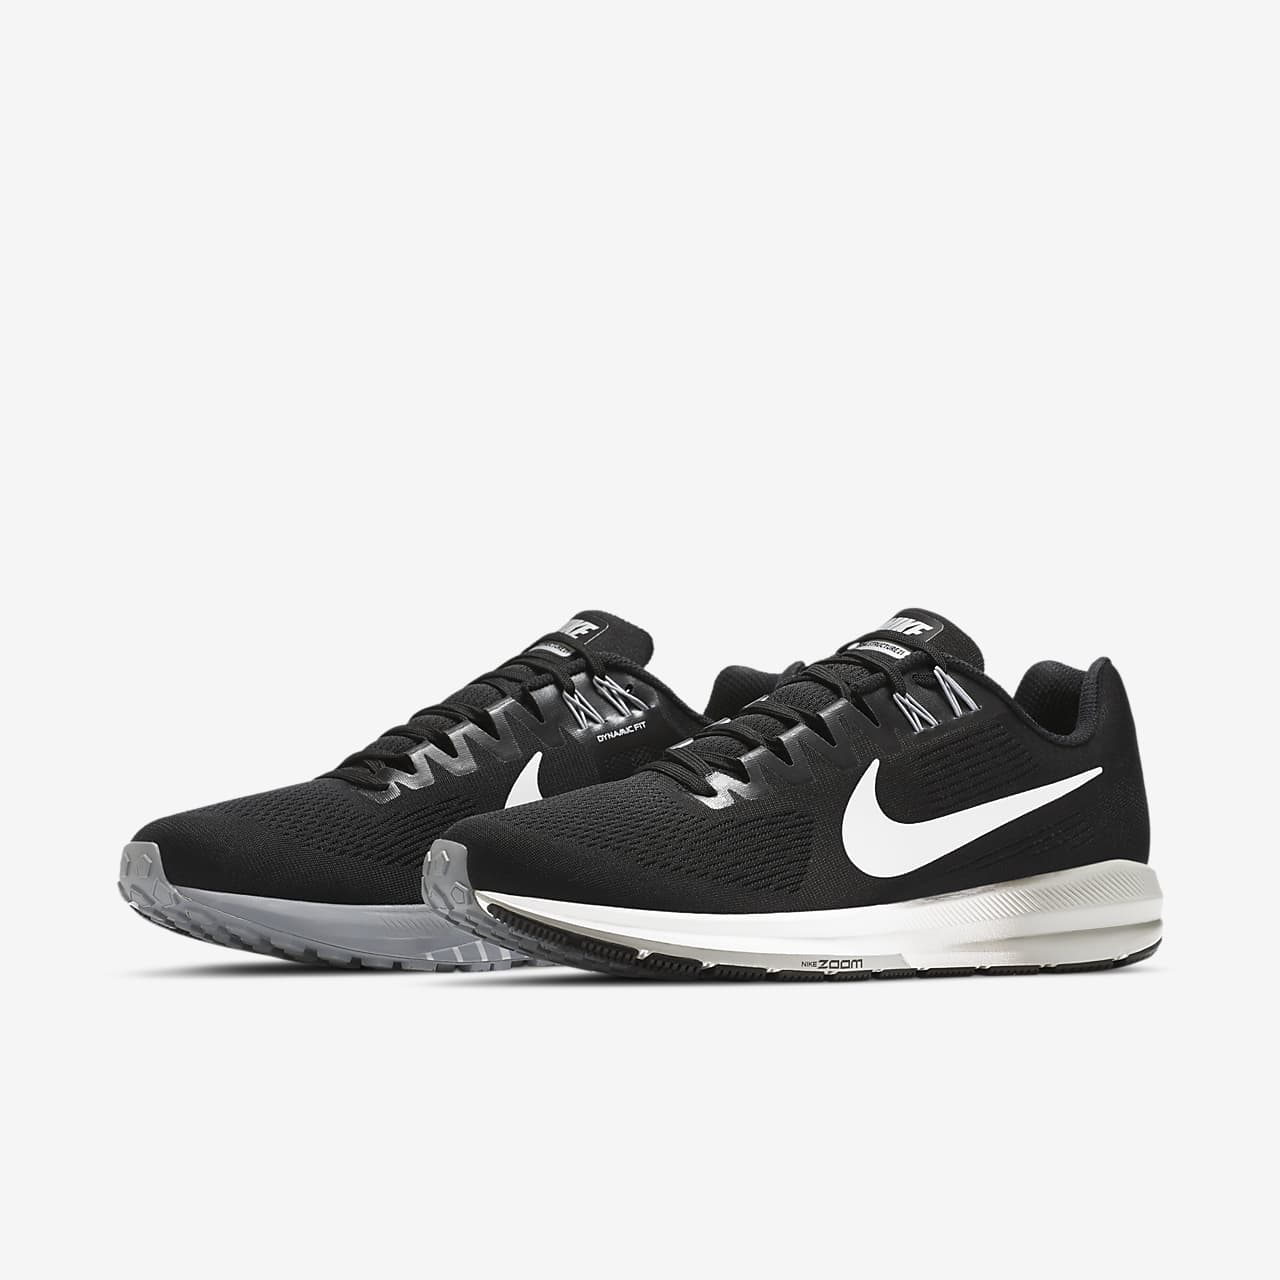 c06f8ad6fb61e Nike Air Zoom Structure 21 Men s Running Shoe. Nike.com